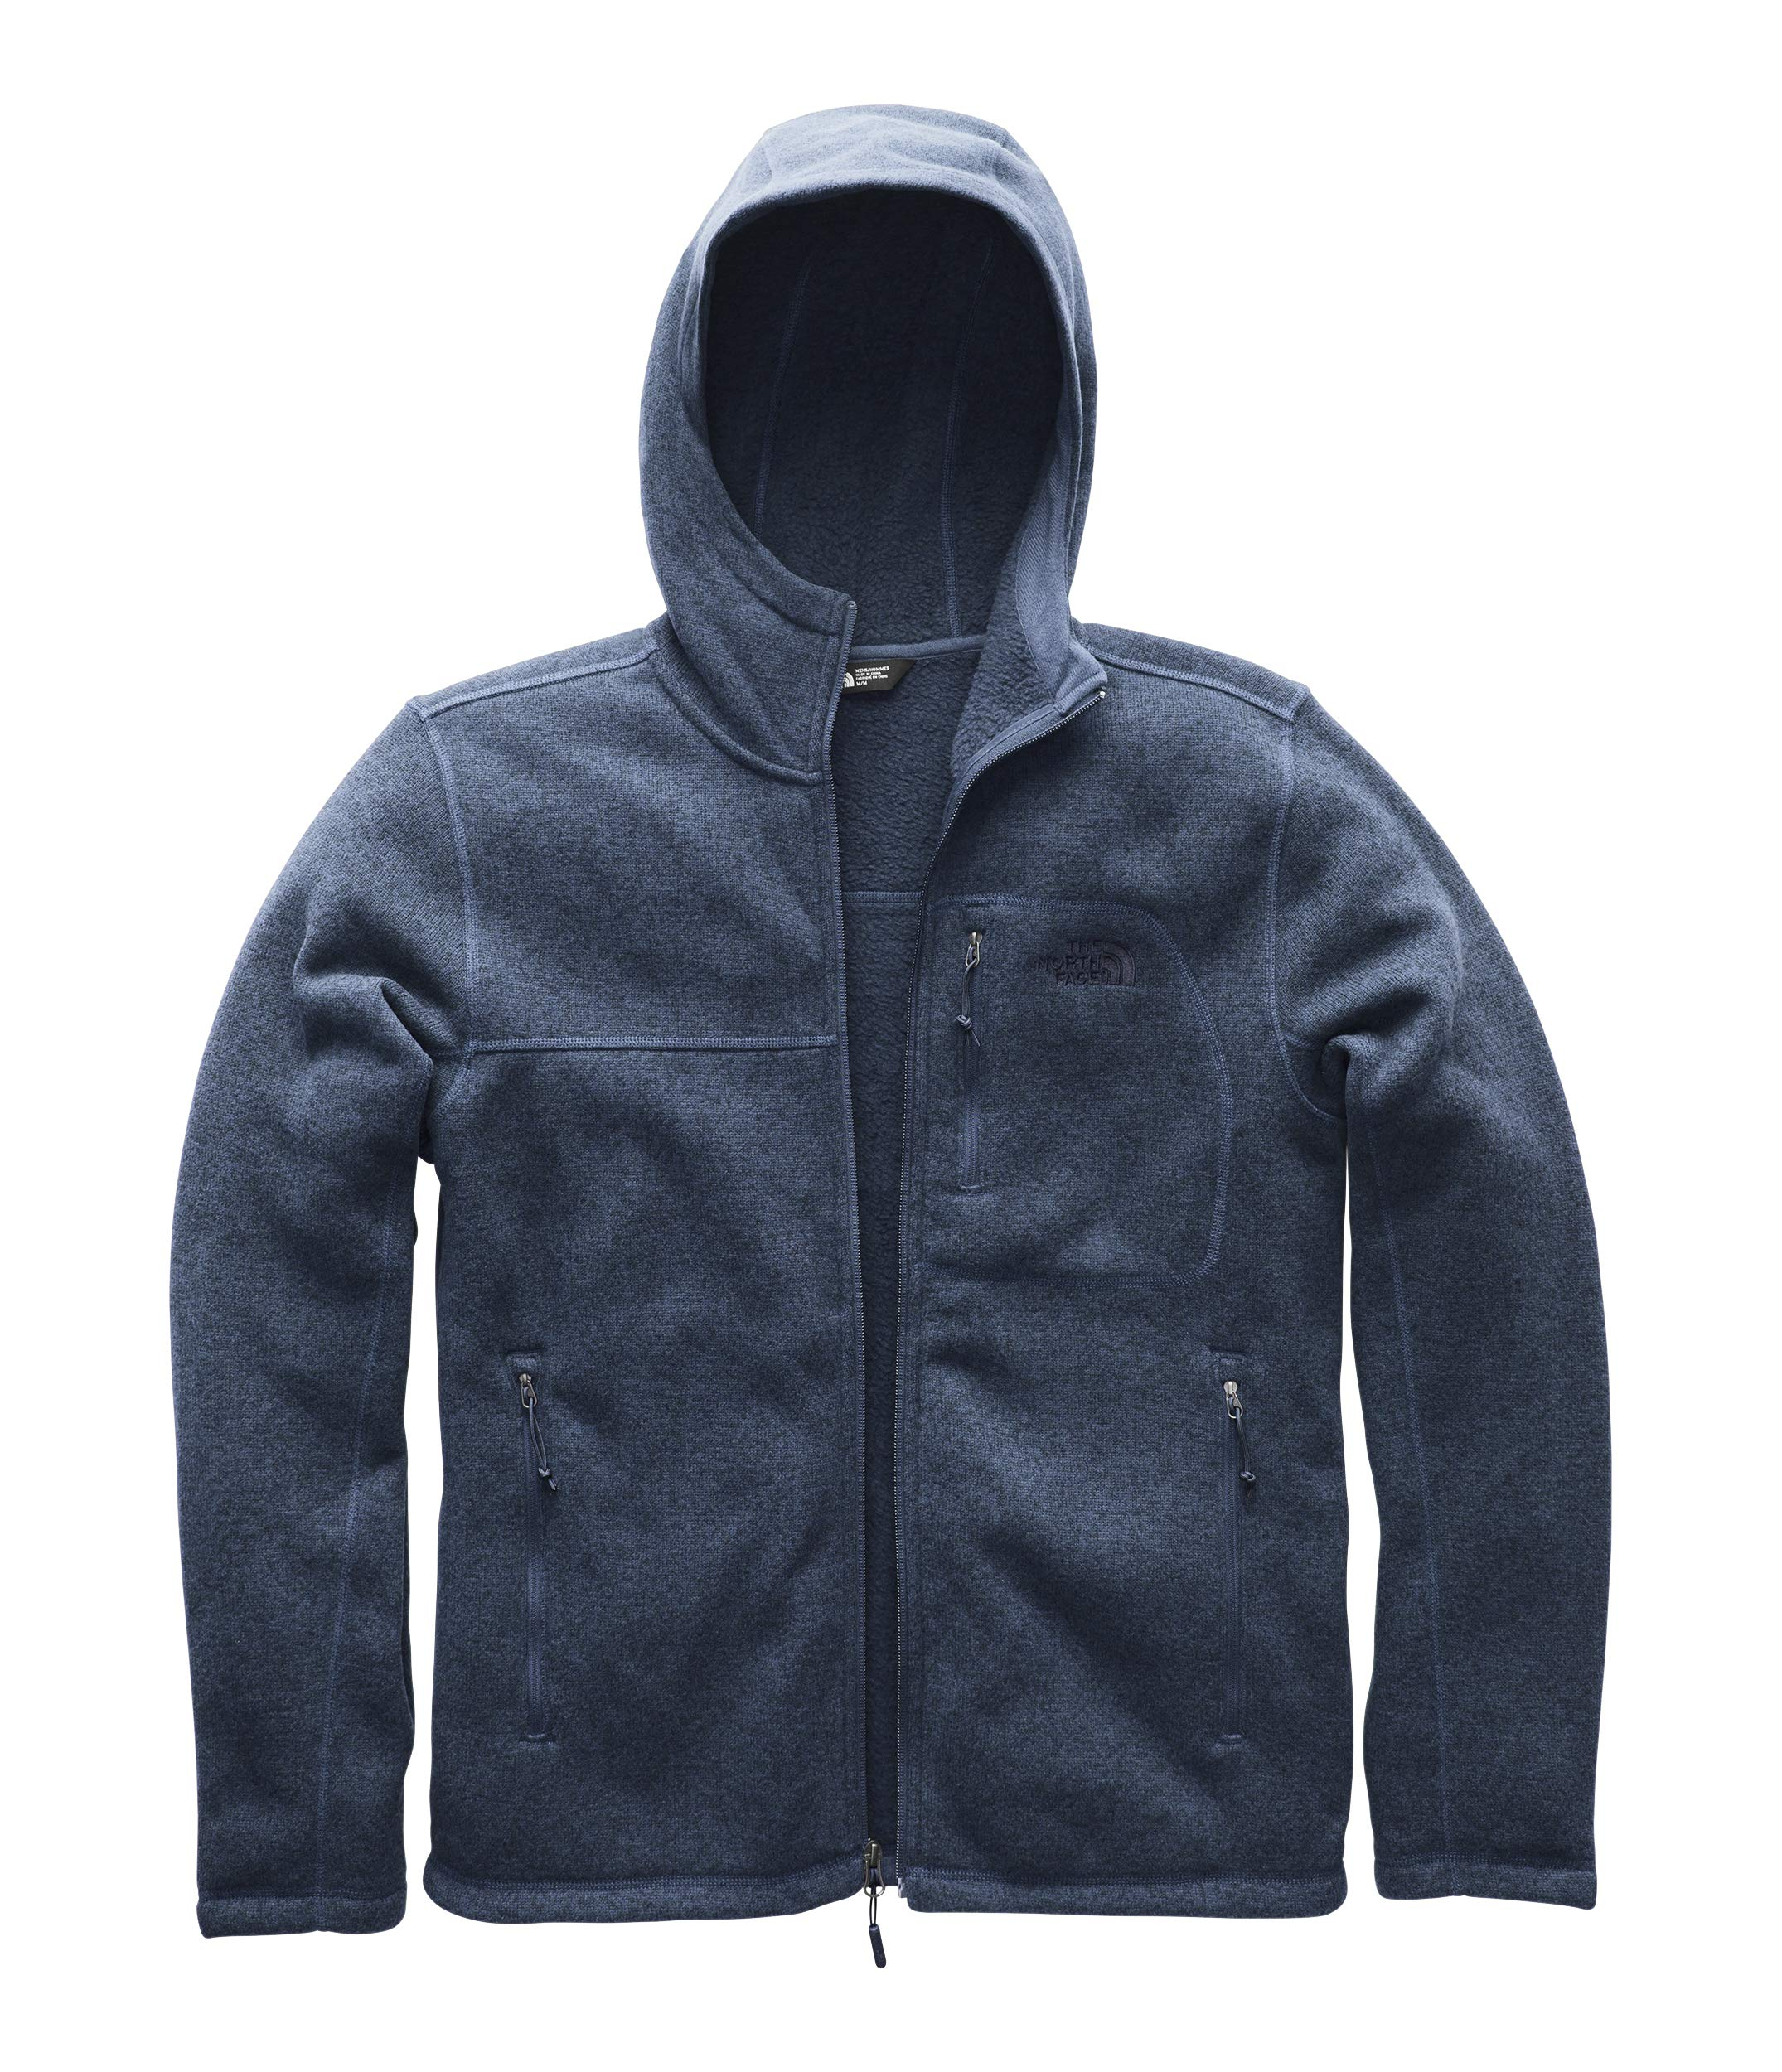 The North Face Men's Gordon Lyons Hoodie - Shady Blue Heather - M